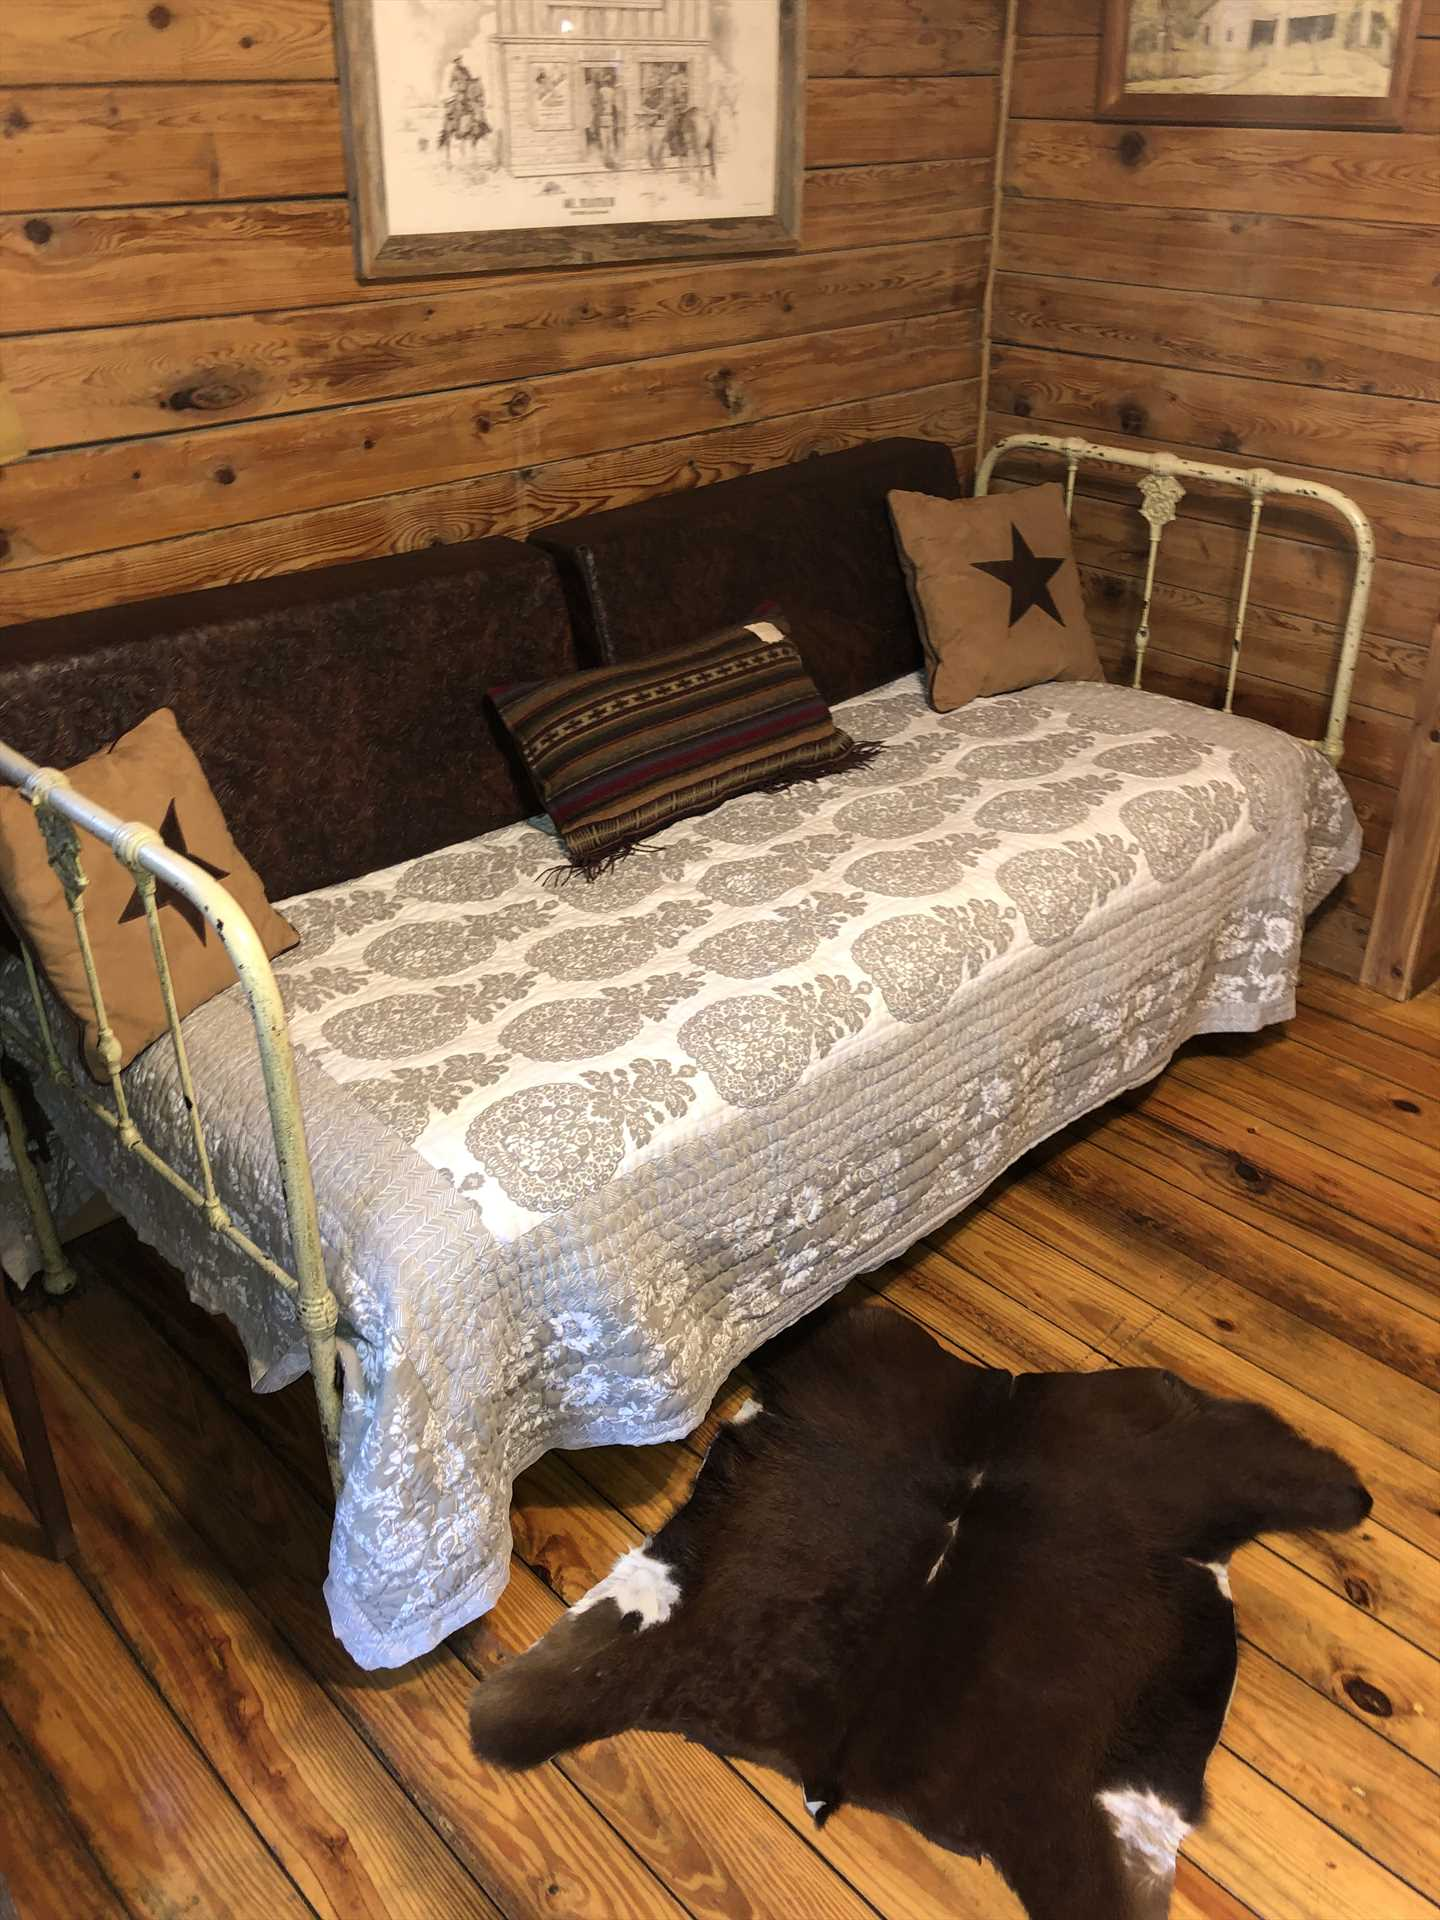 This sweet little day bed rounds out the sleeping accommodations for up to three people-and all bed and bath linens are included!